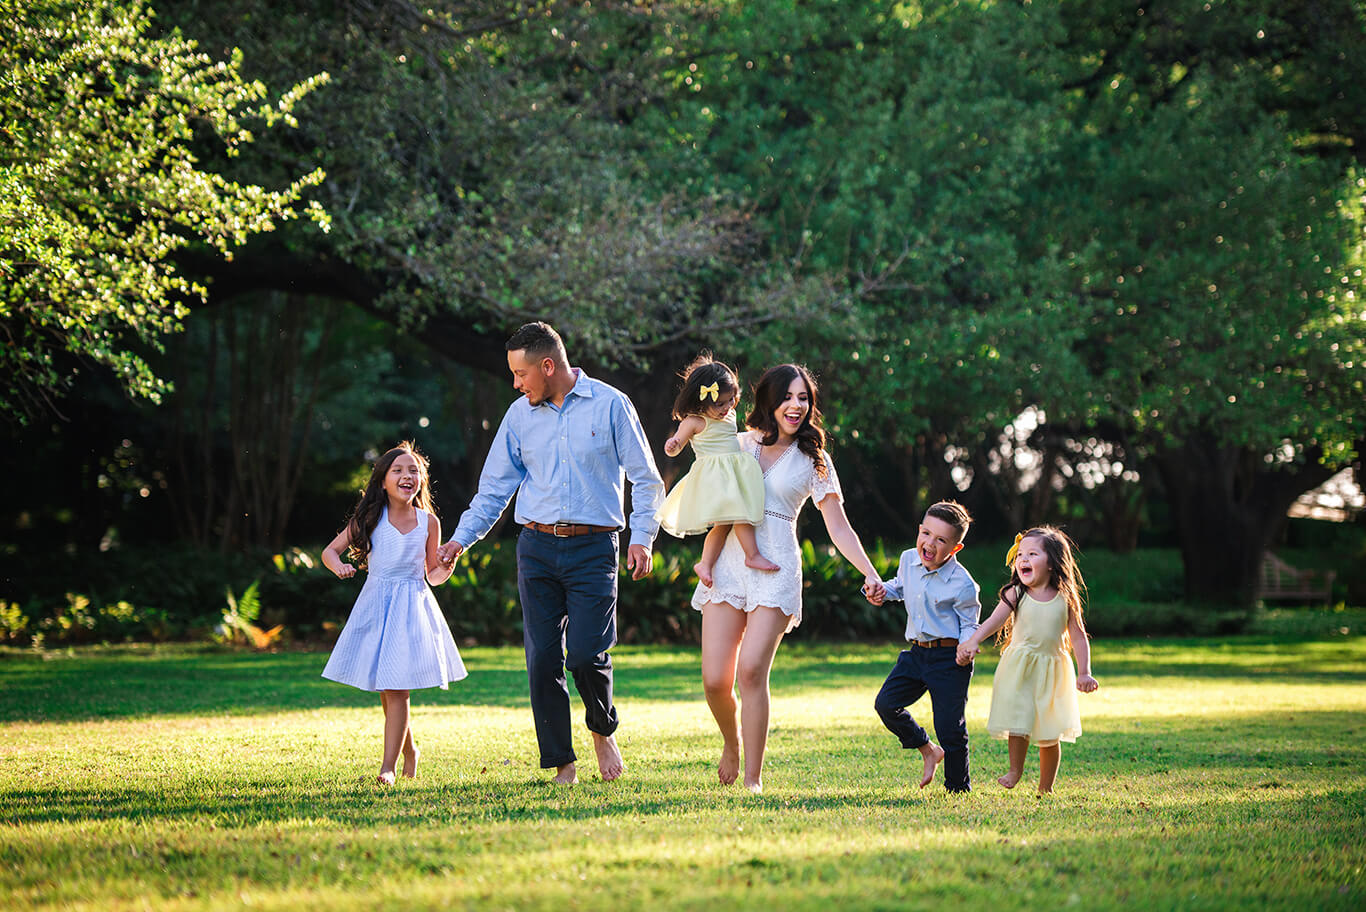 Family photography poses by family photographer Dallas